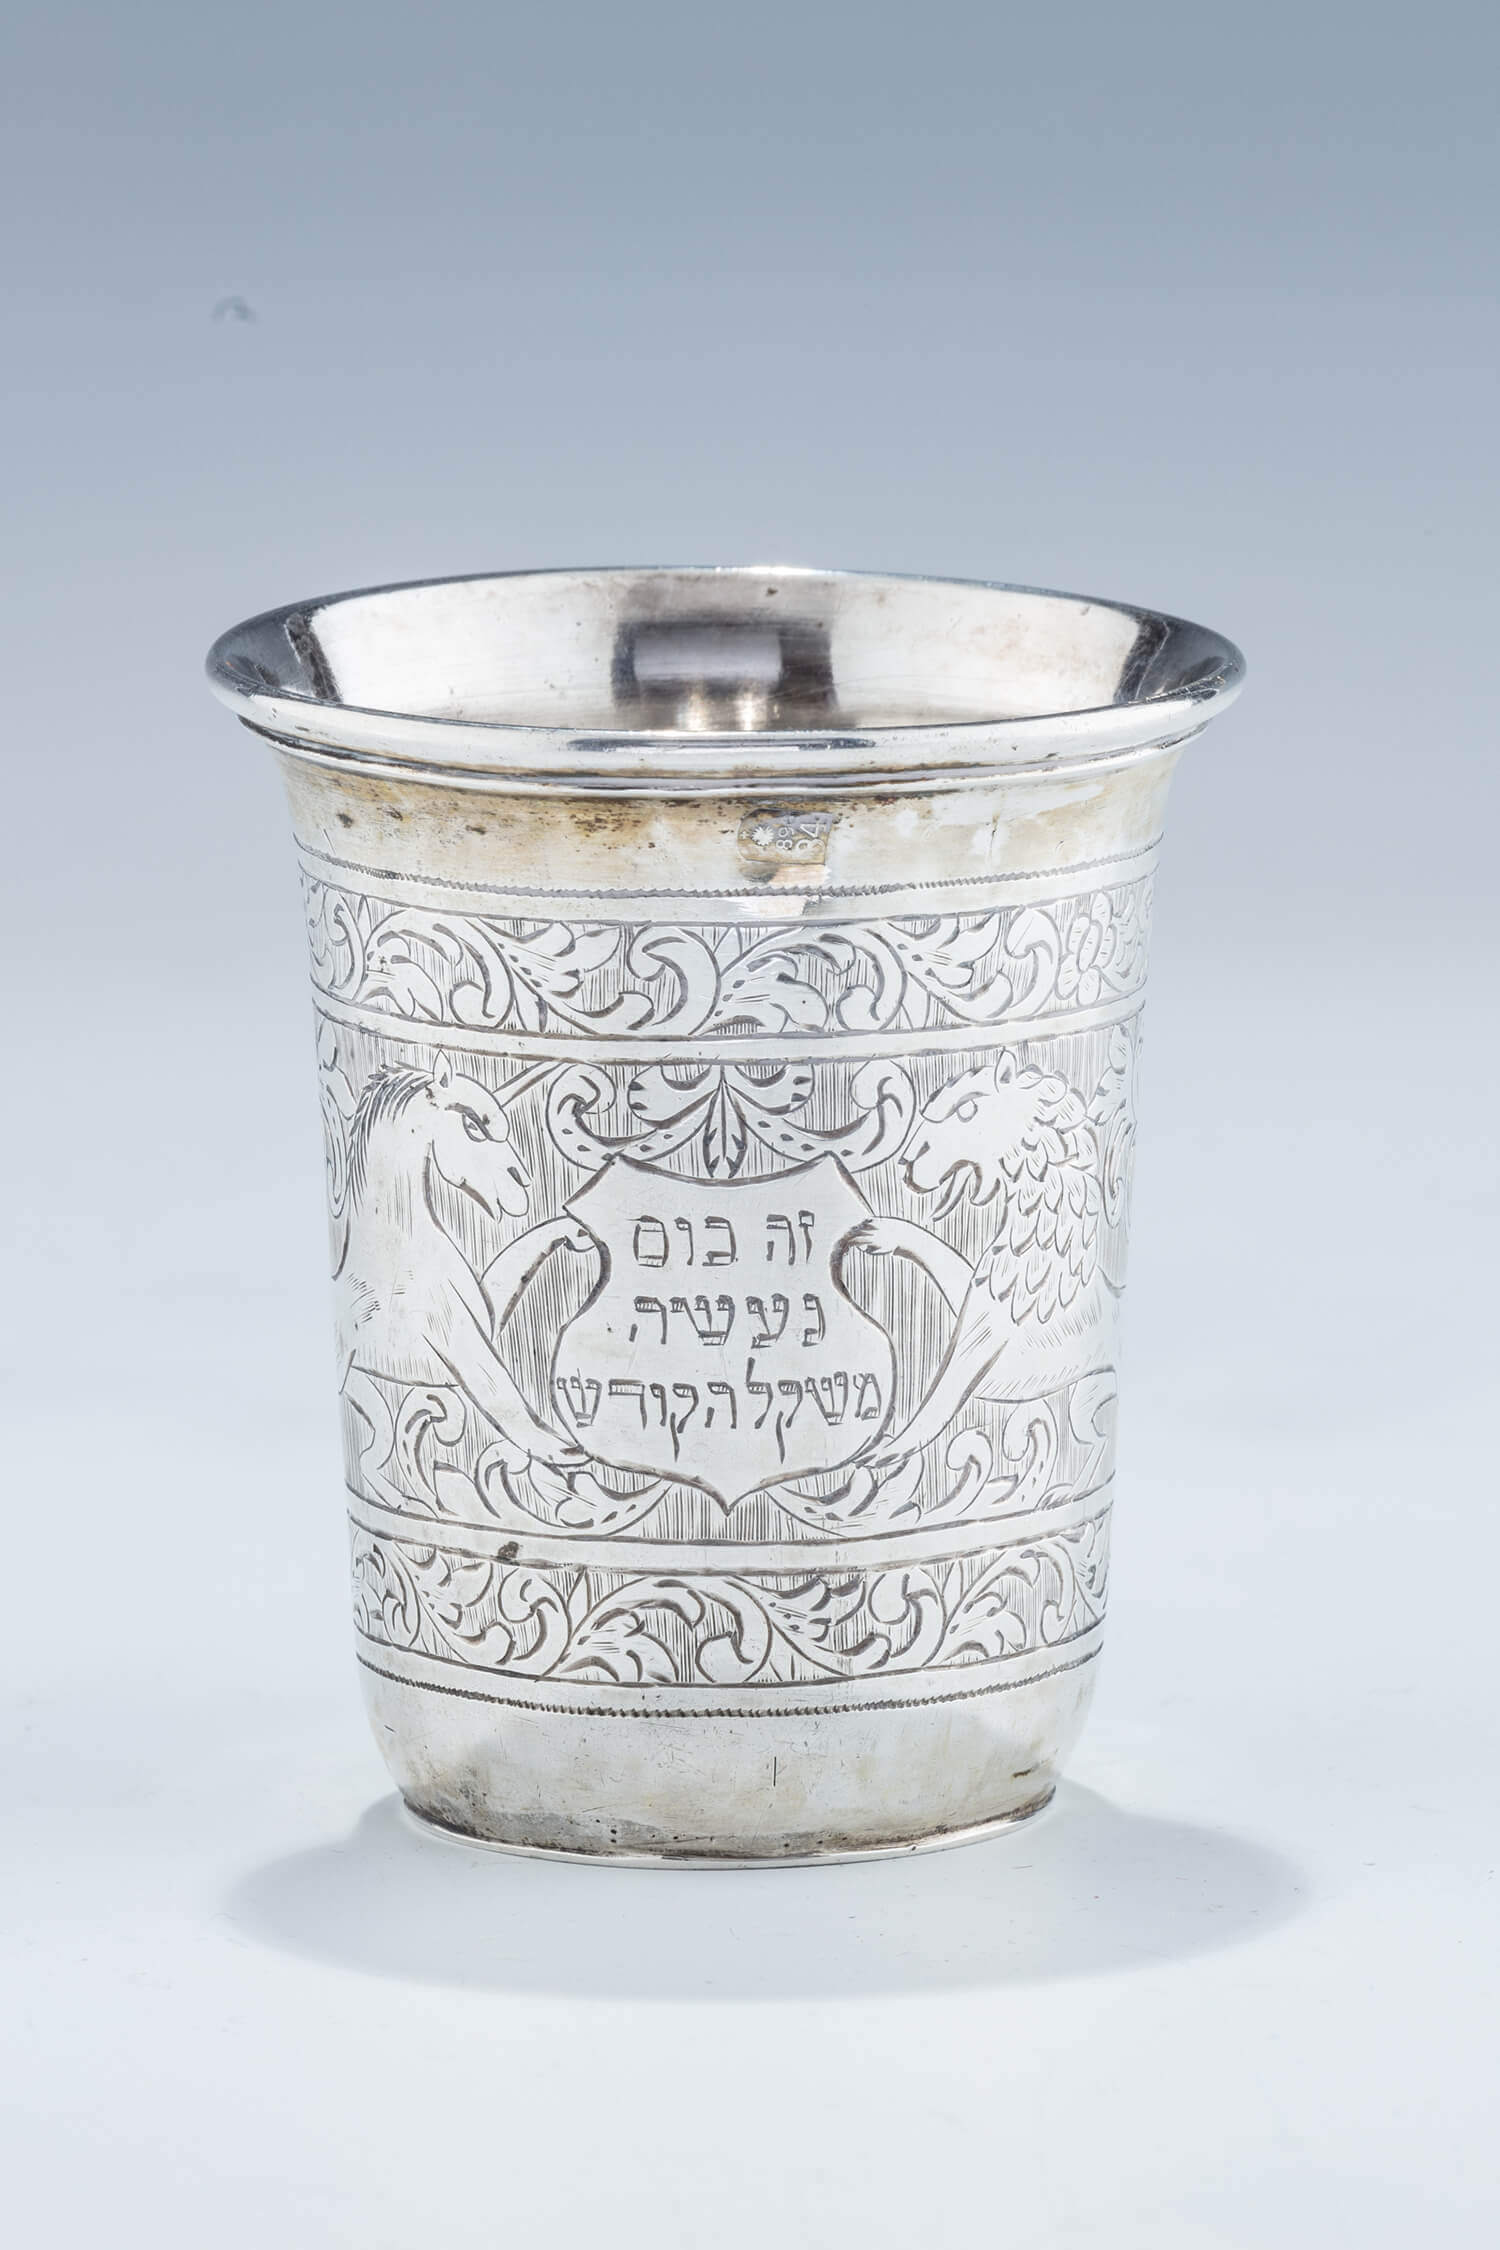 057. AN EARLY SILVER SHMIROTH KIDDUSH CUP